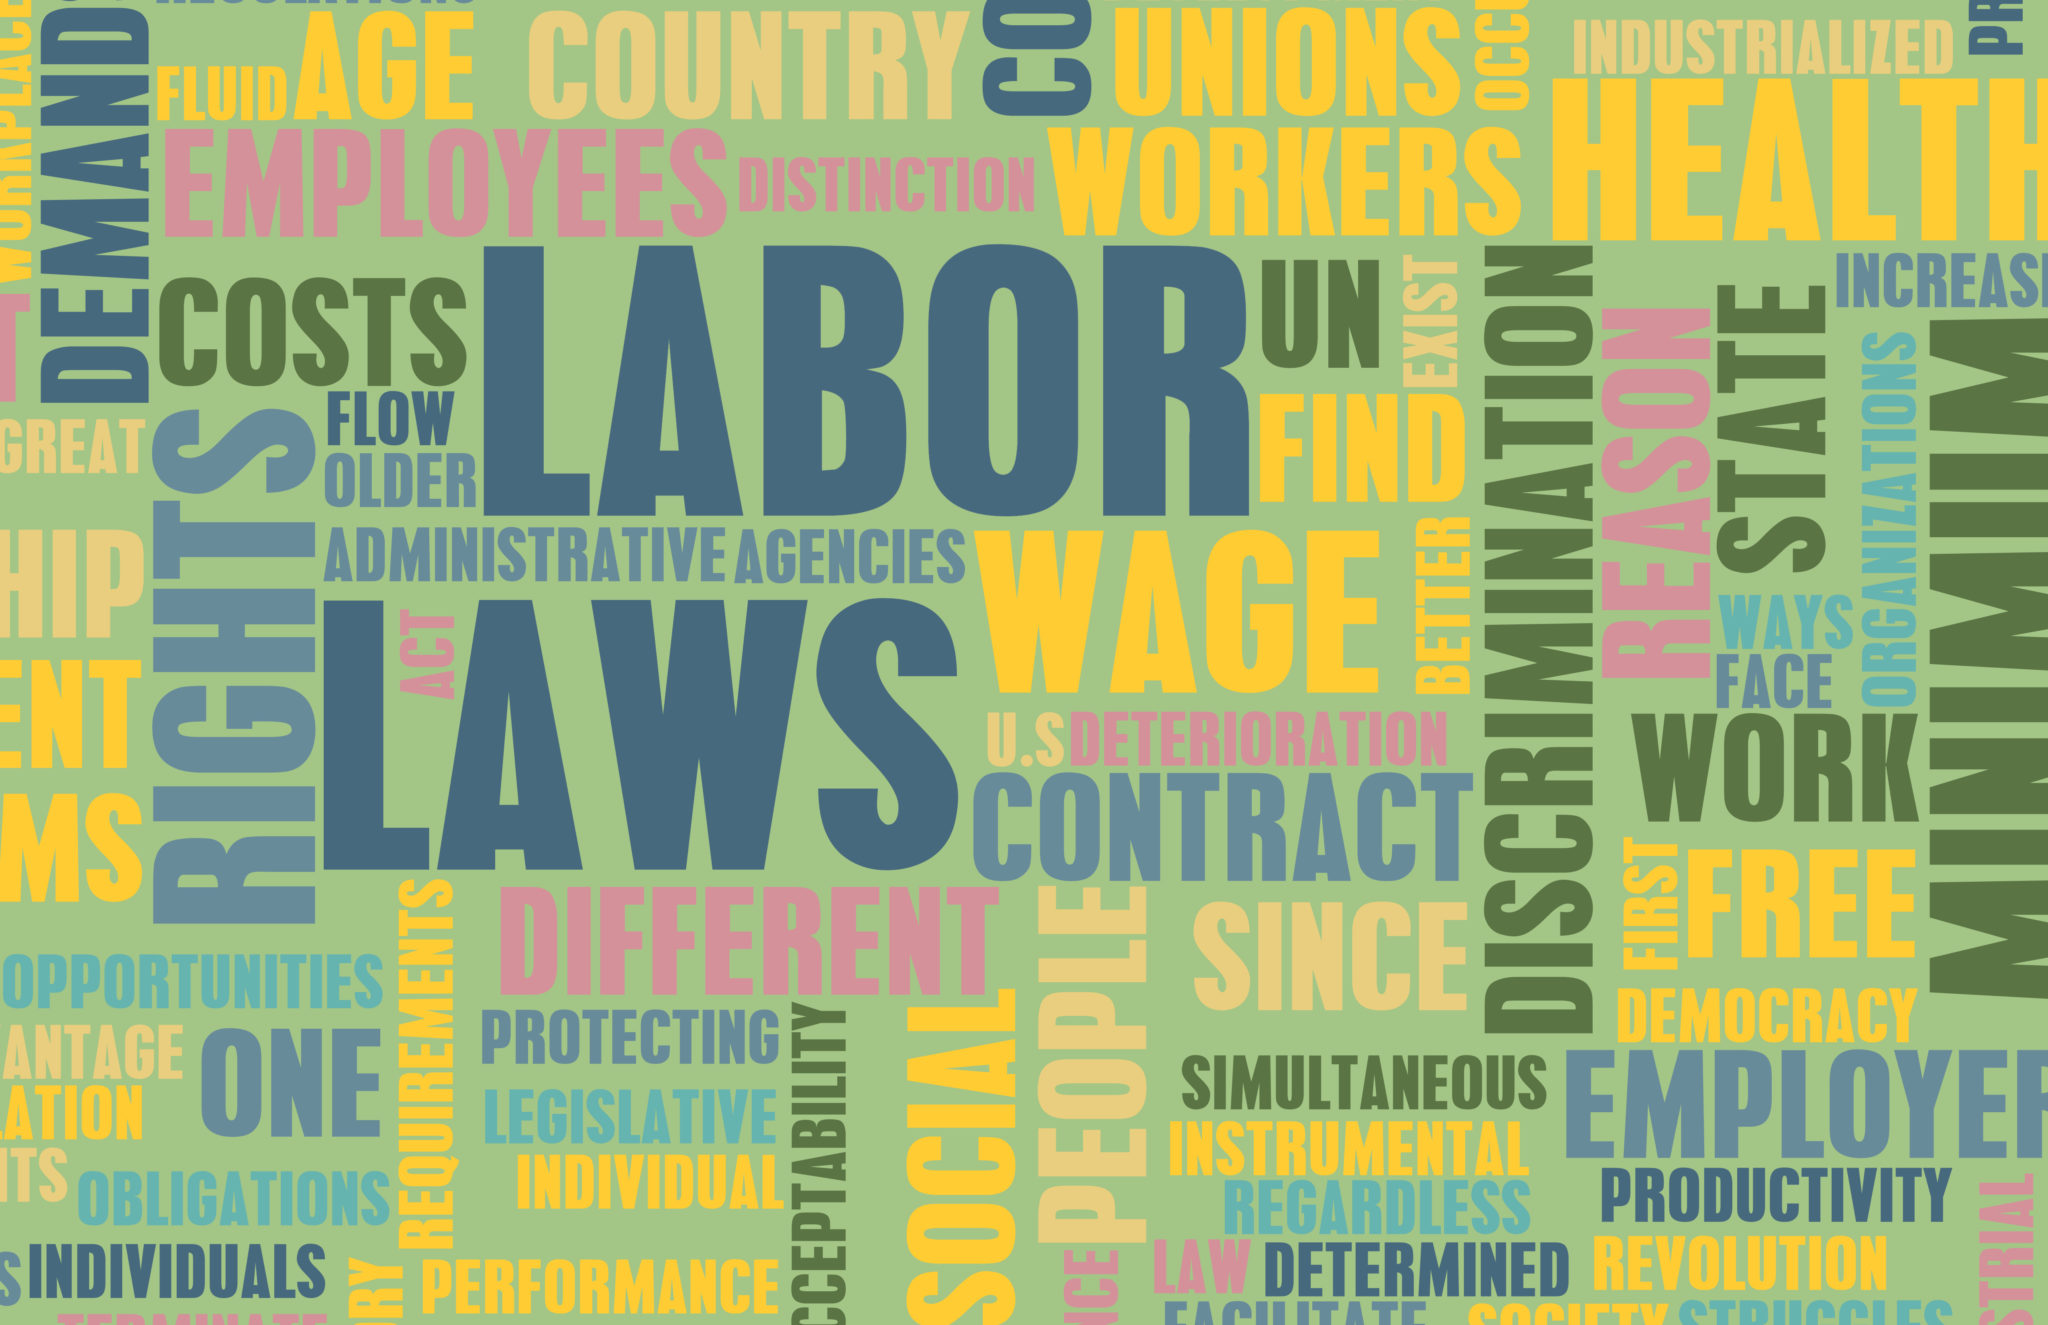 bigstock-Labor-Laws-in-the-Workplace-as-50495255.jpg